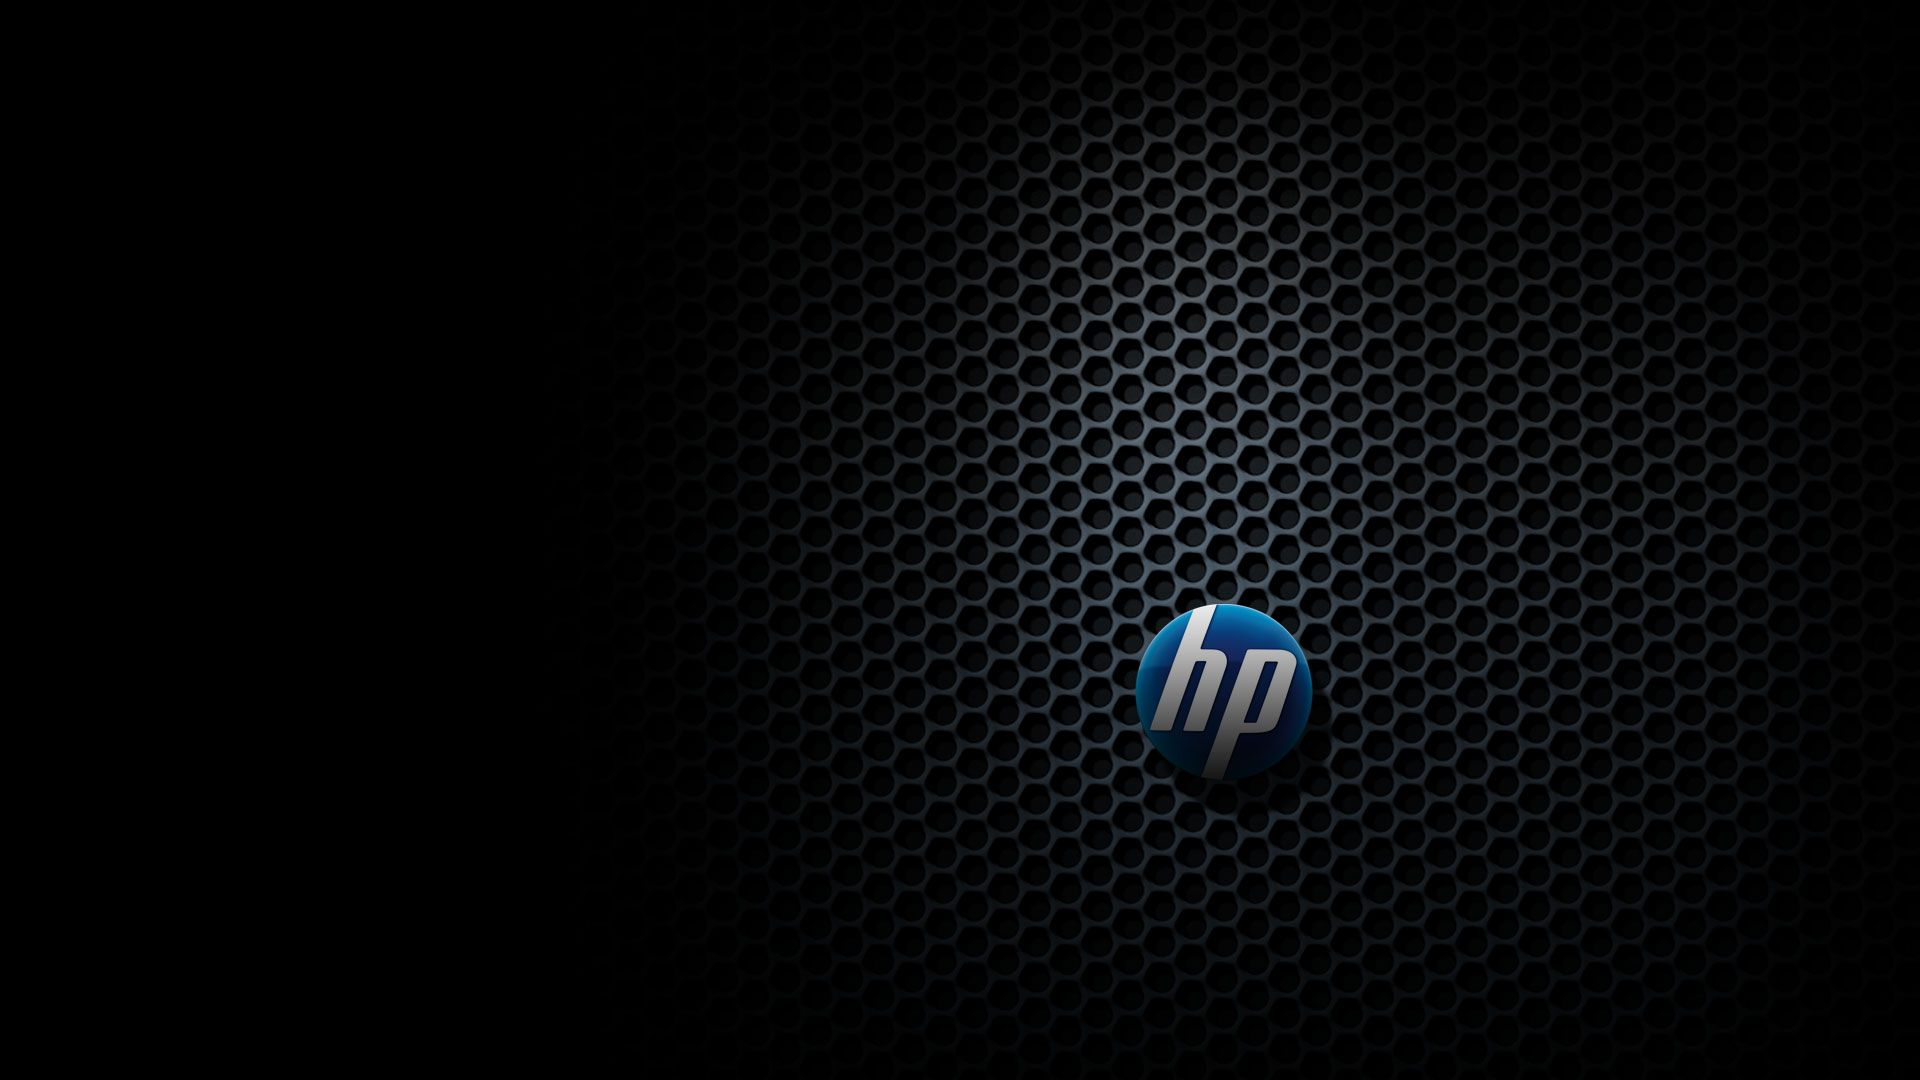 Hp 1080p Background Http Wallpapers And Backgrounds Net Hp 1080p Background Hd Wallpapers For Laptop Laptop Wallpaper Hp Laptop